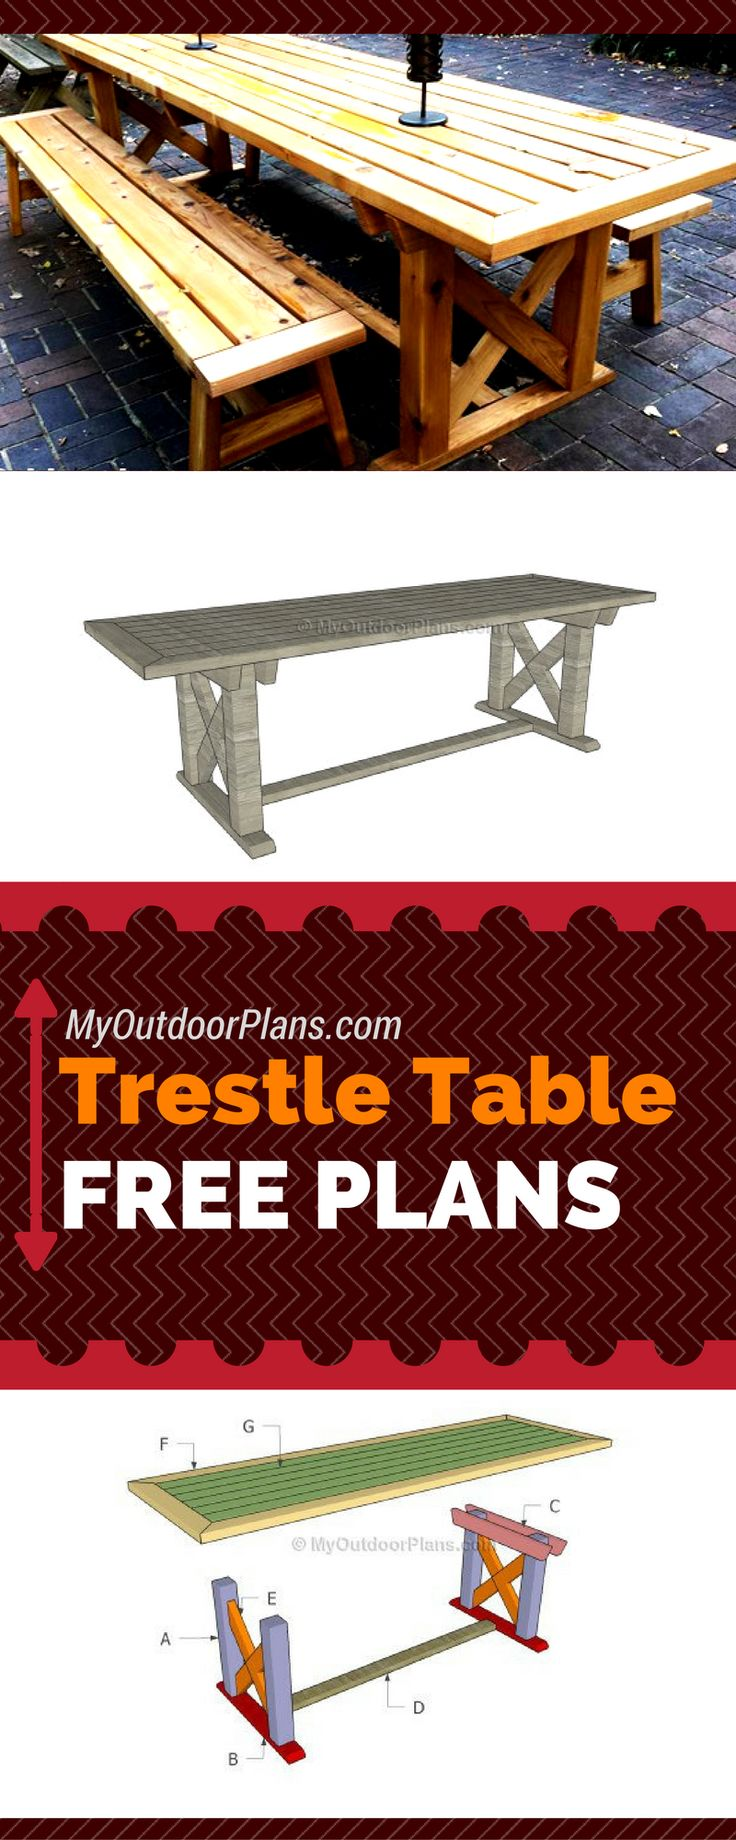 Easy to follow plans for you to build a trestle table. #diy myoutdoorplans.com